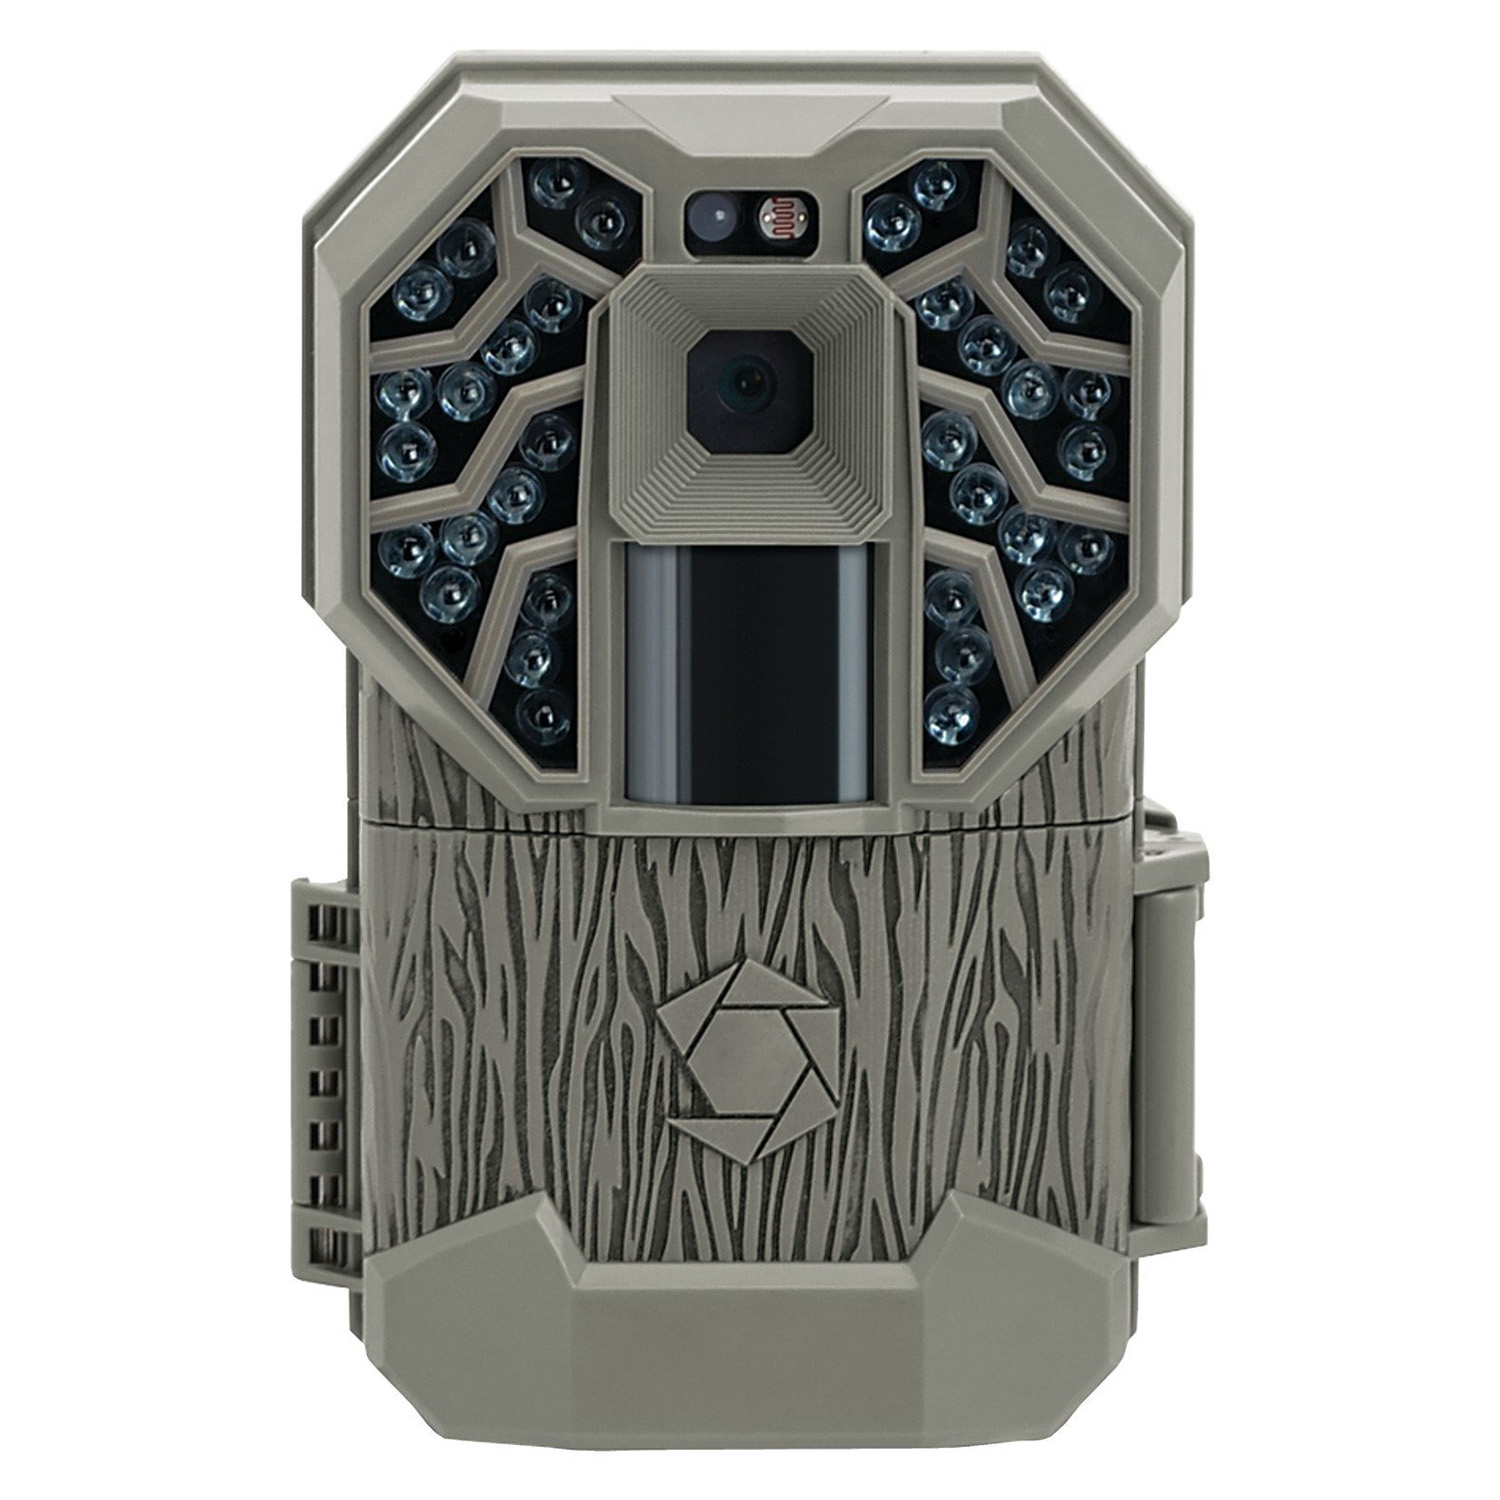 Stealth Cam G34 Game Camera 12 MP by Stealth Cam